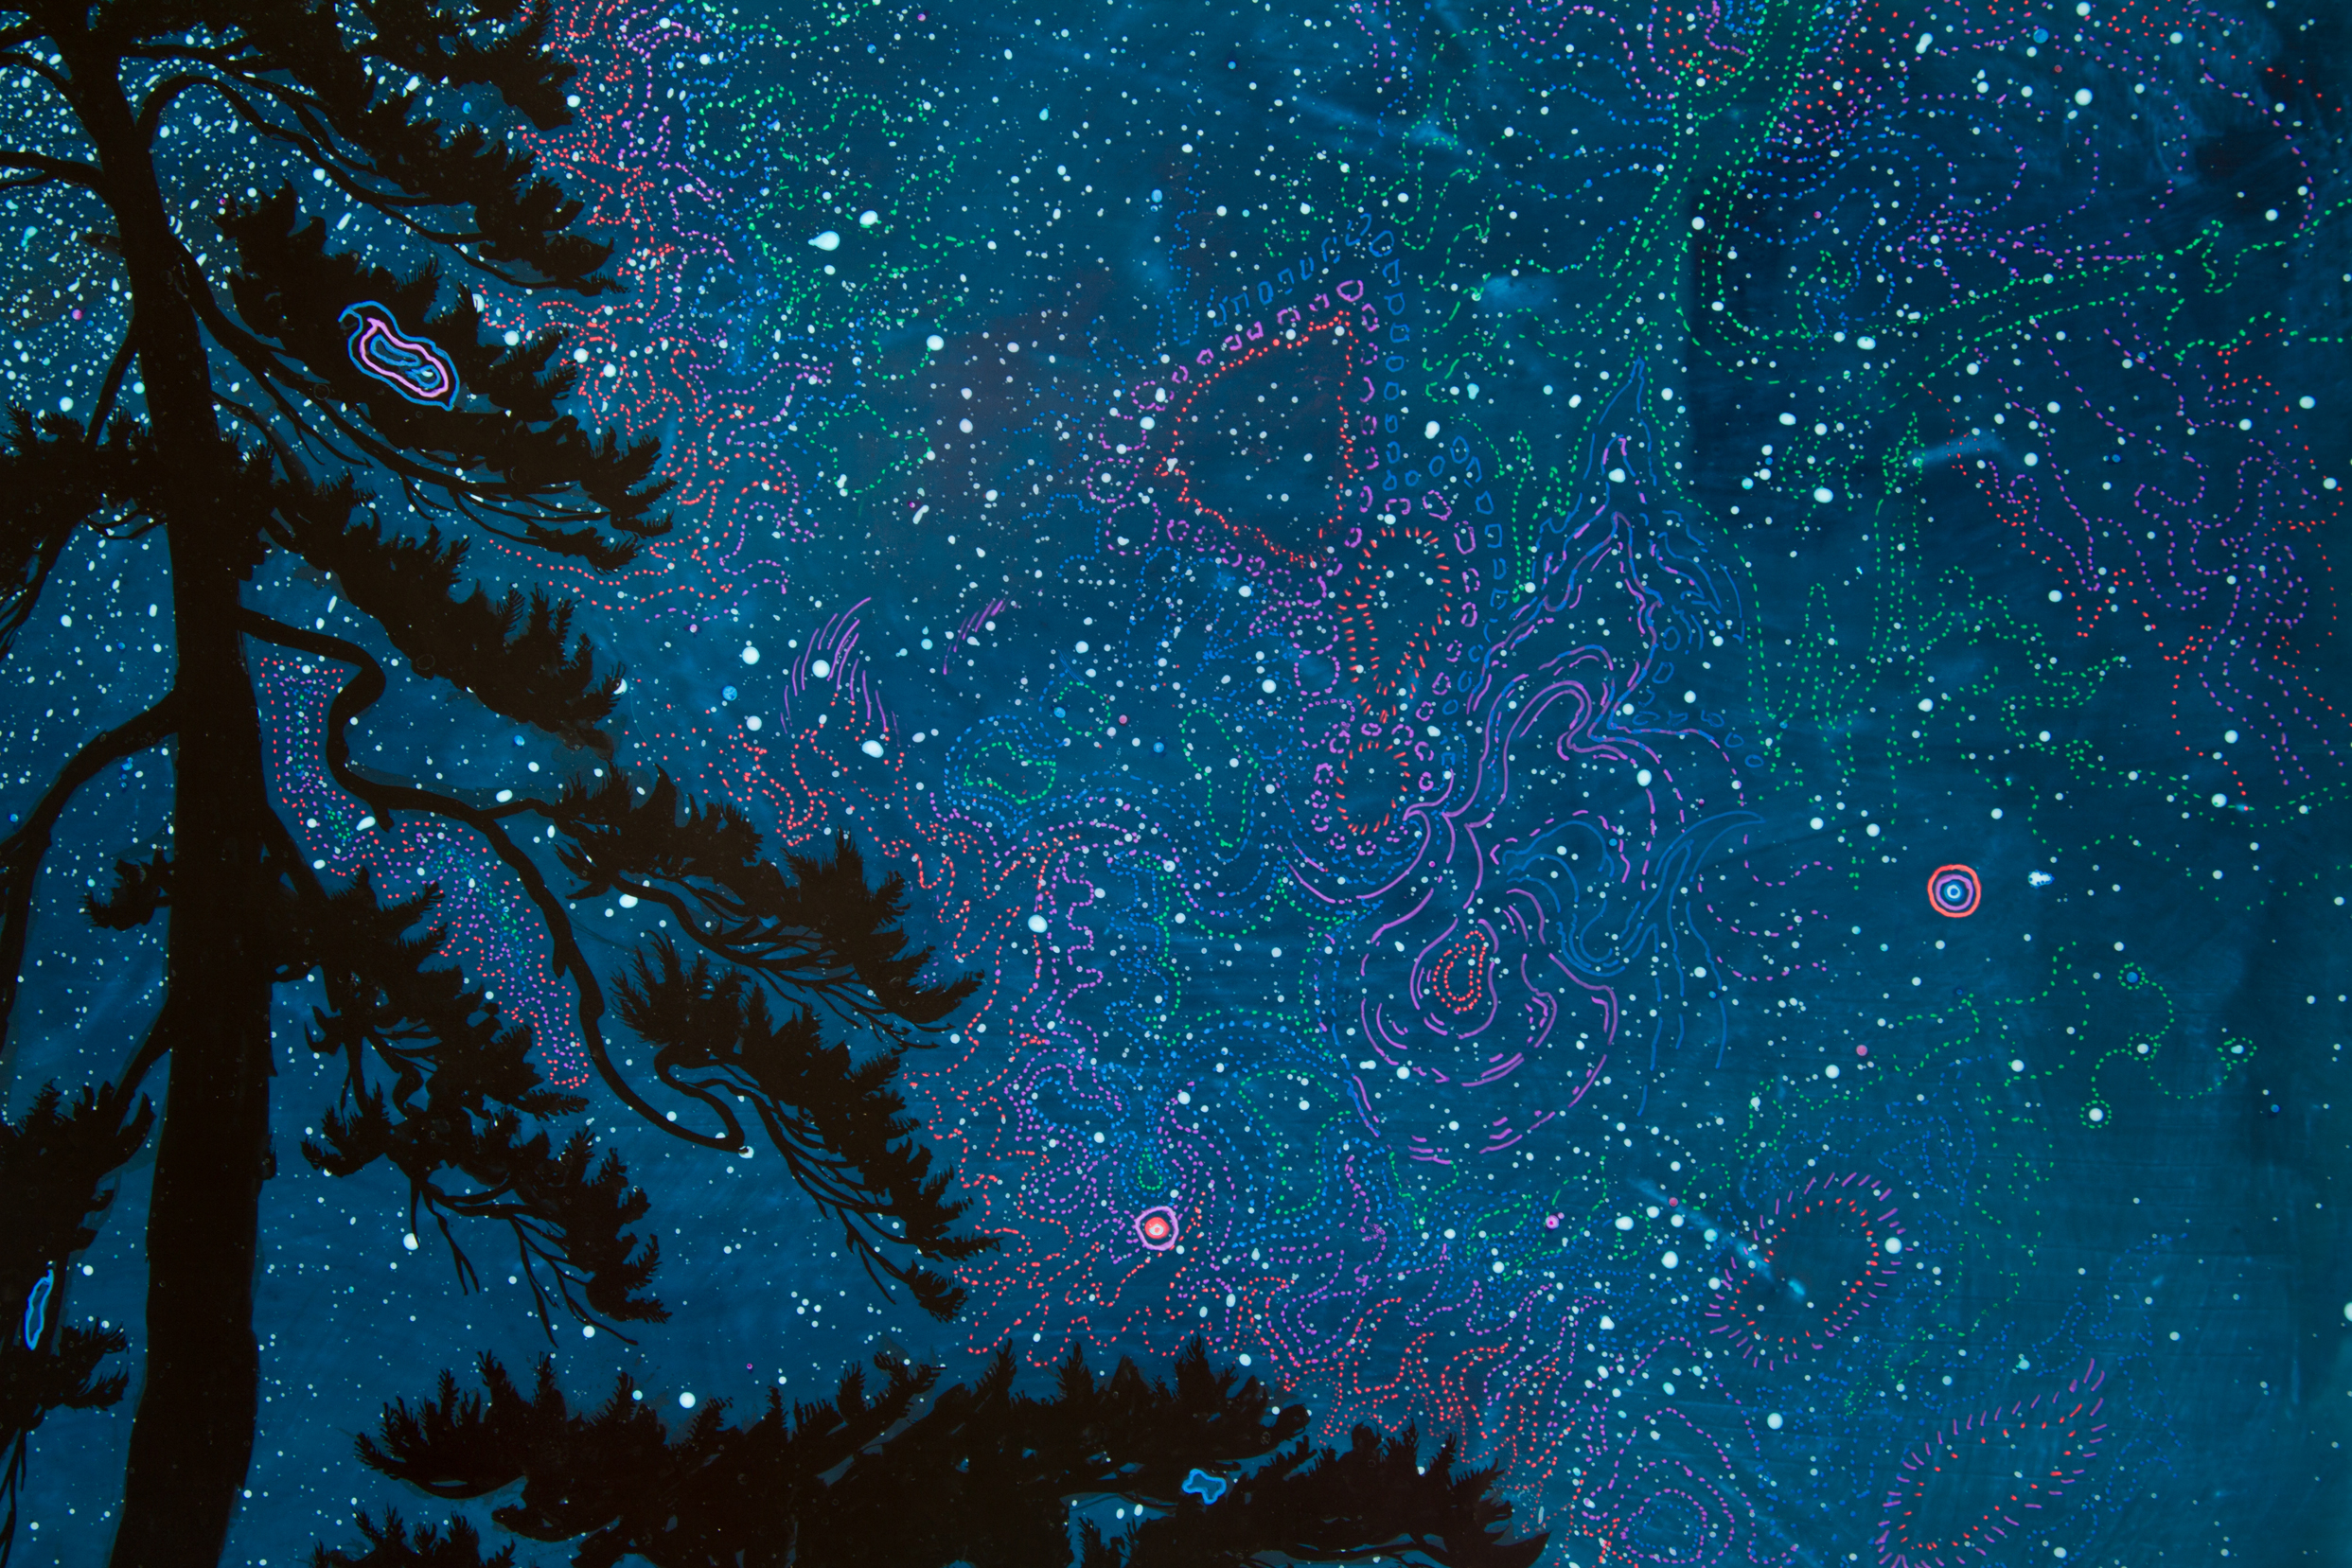 Astral Abyss 3 detail small.JPG